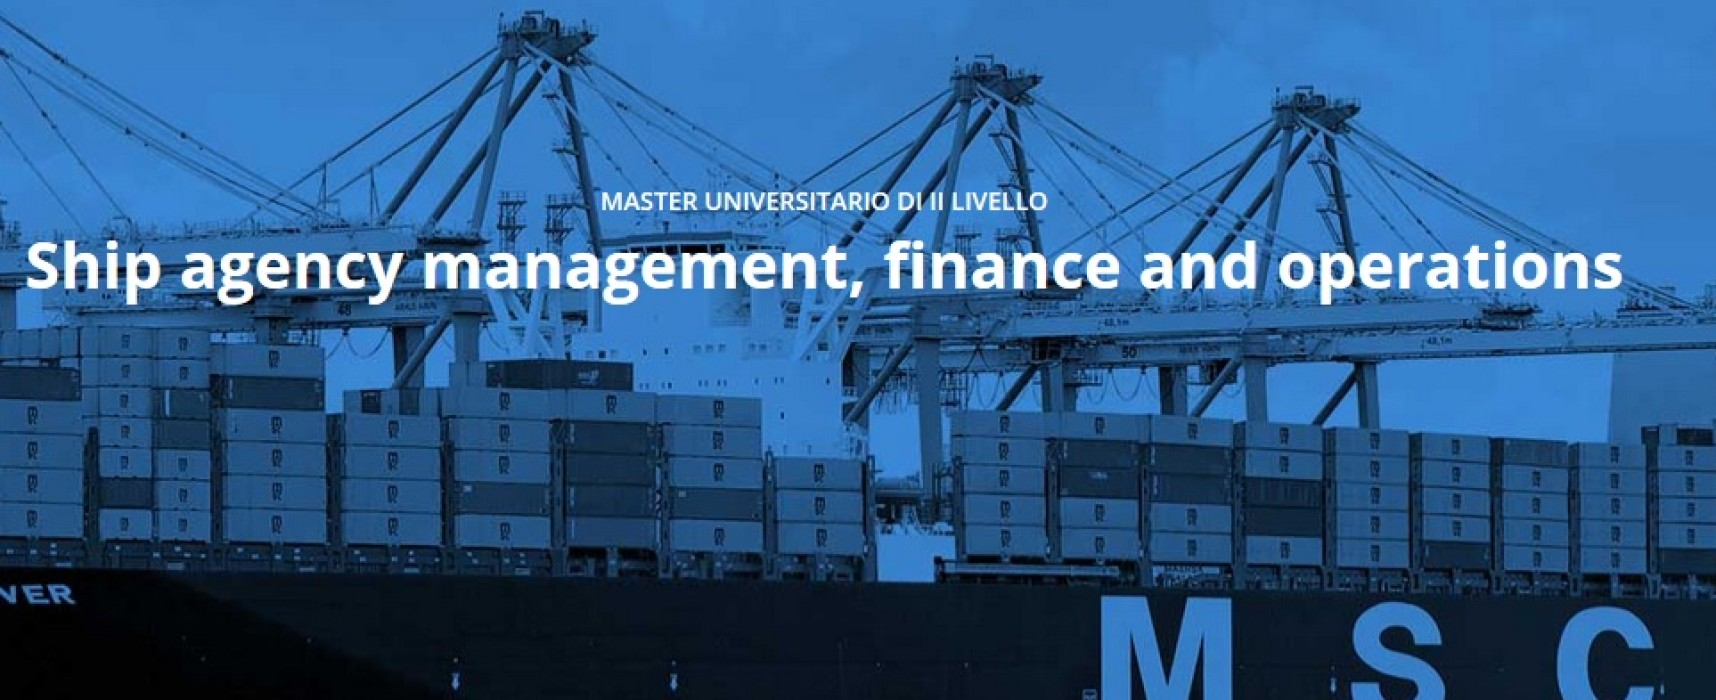 "Master universitario gratuito di II livello in ""Ship agency management, finance and operations"" a Genova"